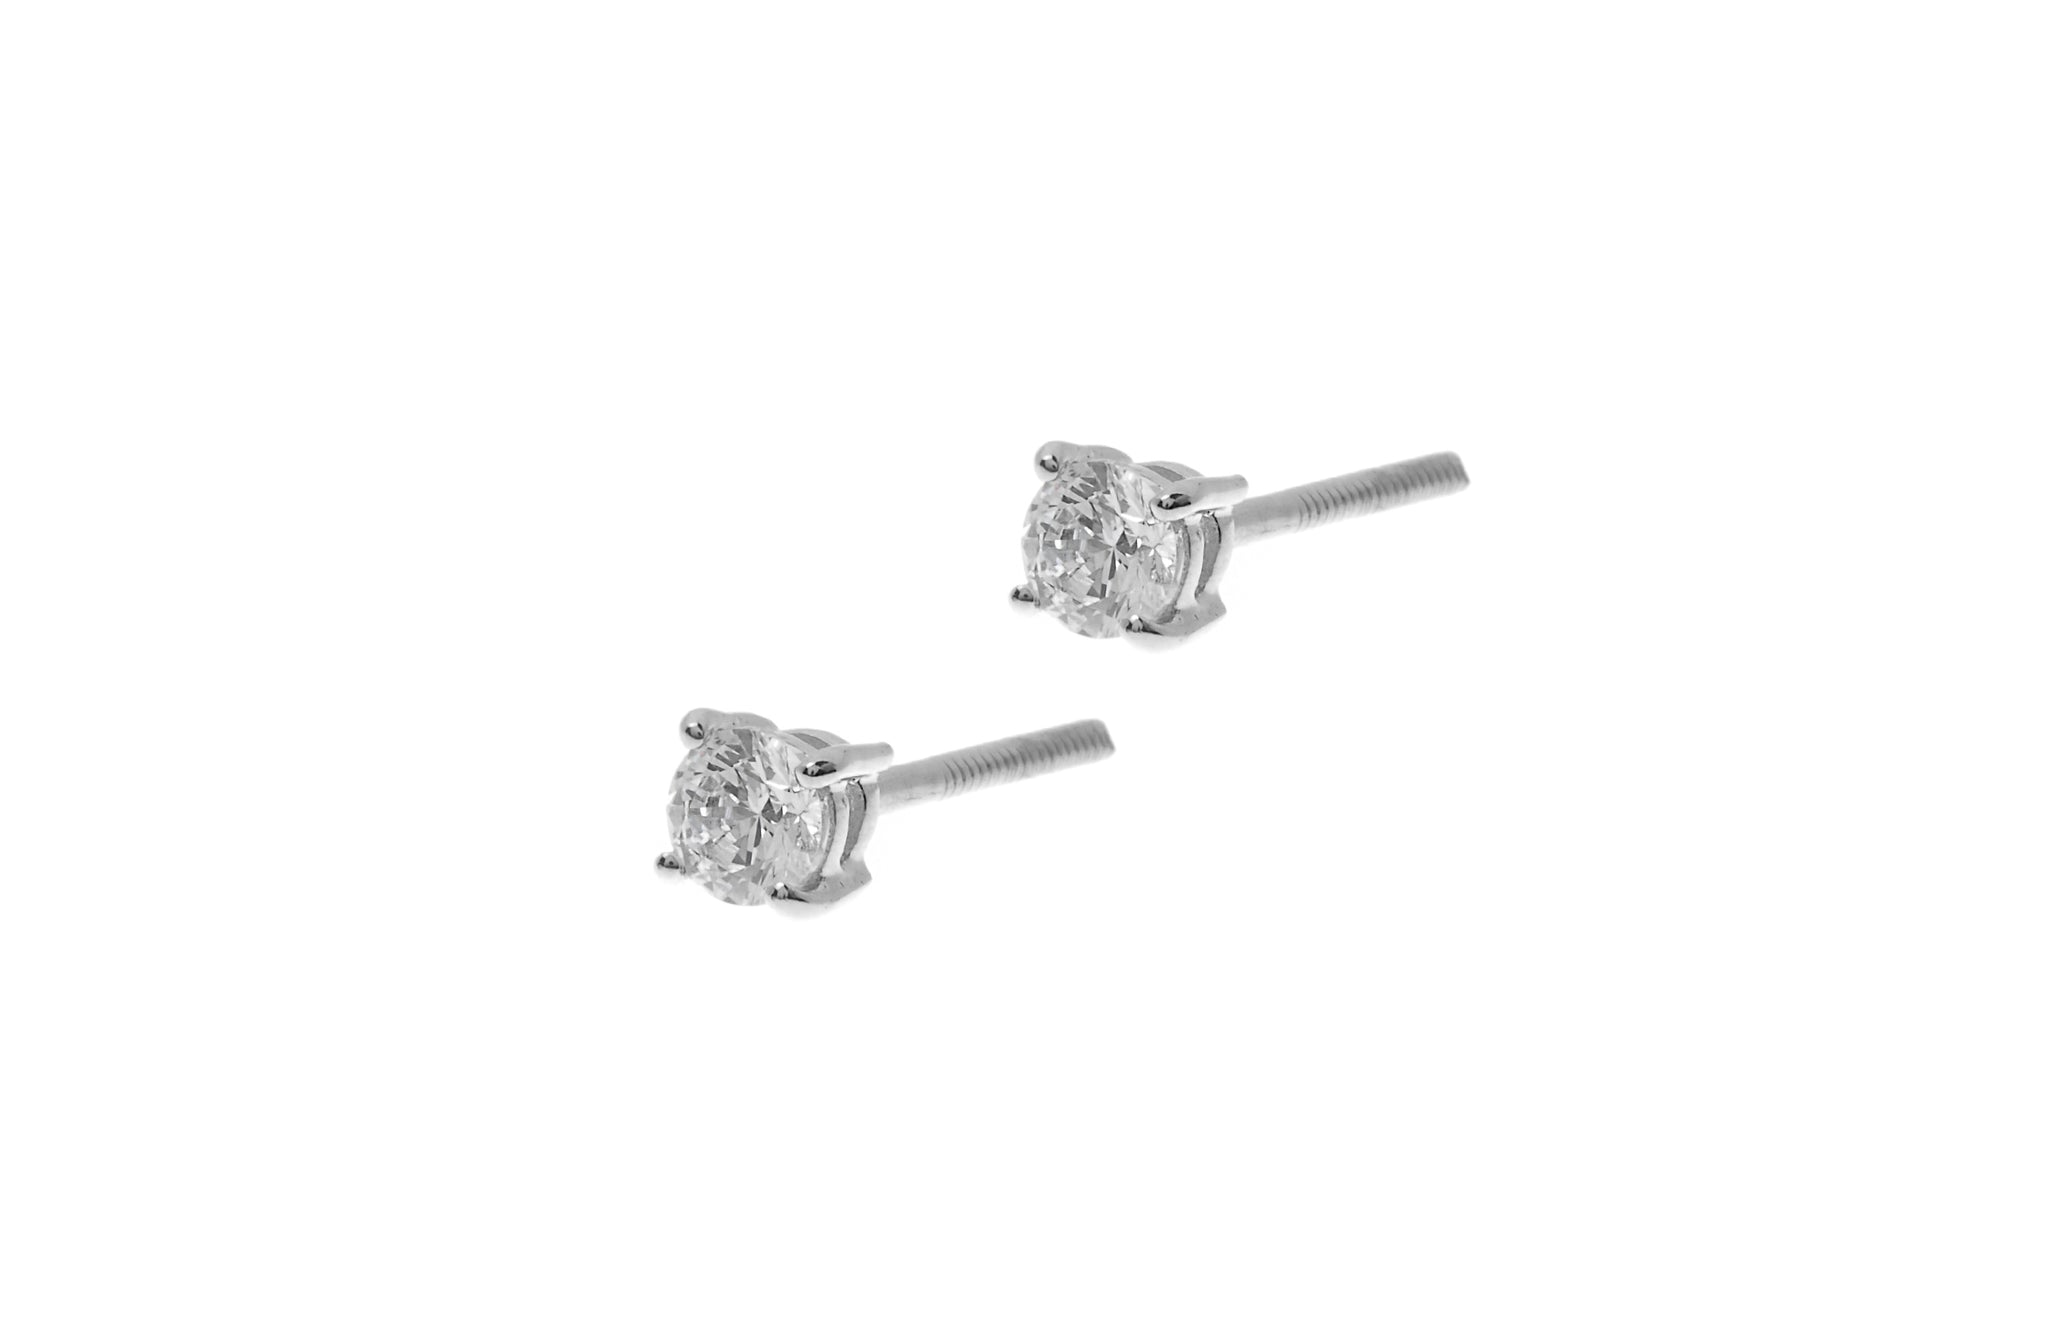 18ct White Gold Stud Earrings set with a Round Brilliant Cut Swarovski Zirconia stones (1.44g) ET12132